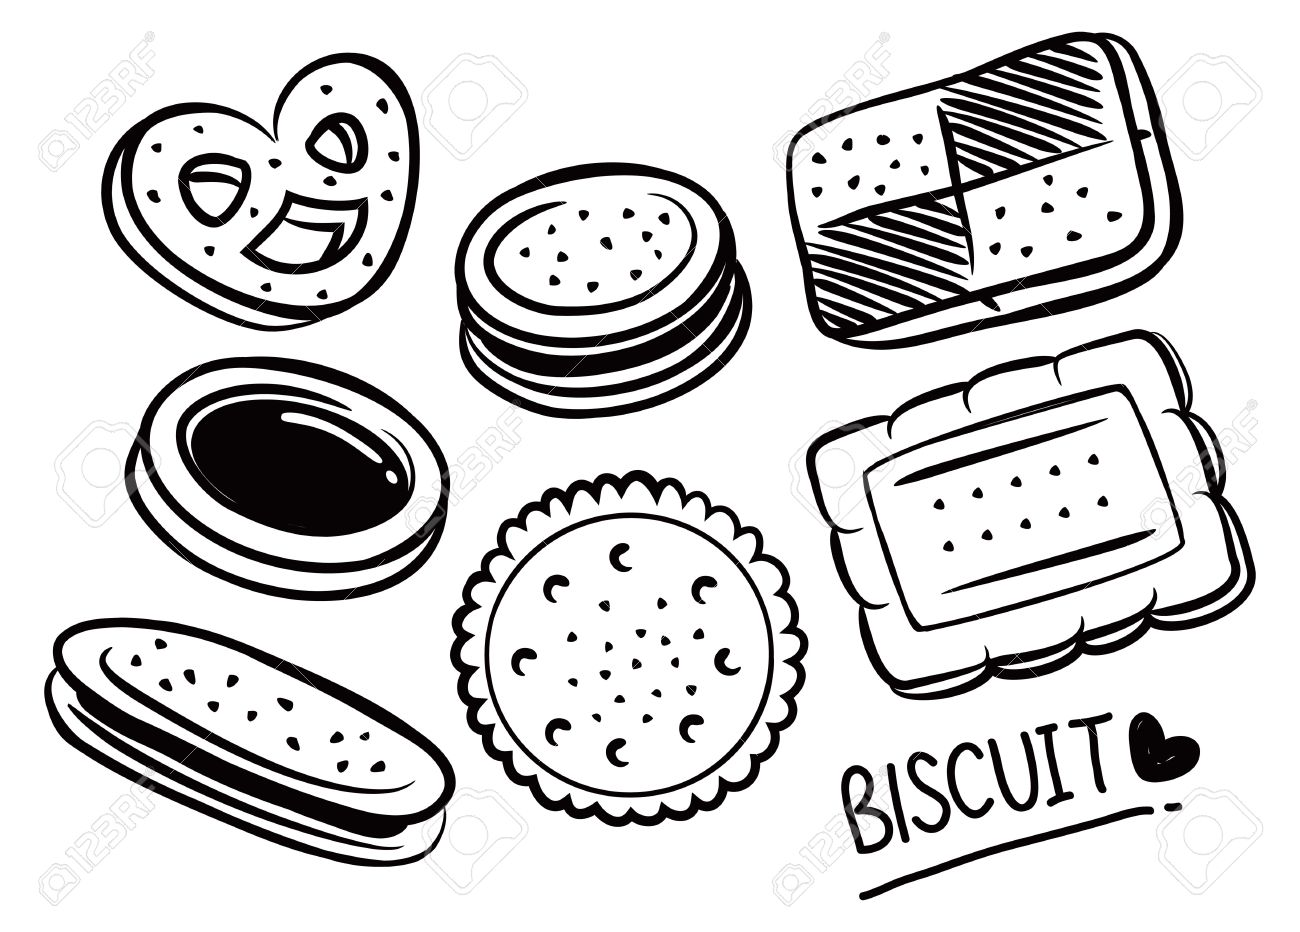 Biscuit clipart black and white 1 » Clipart Station.